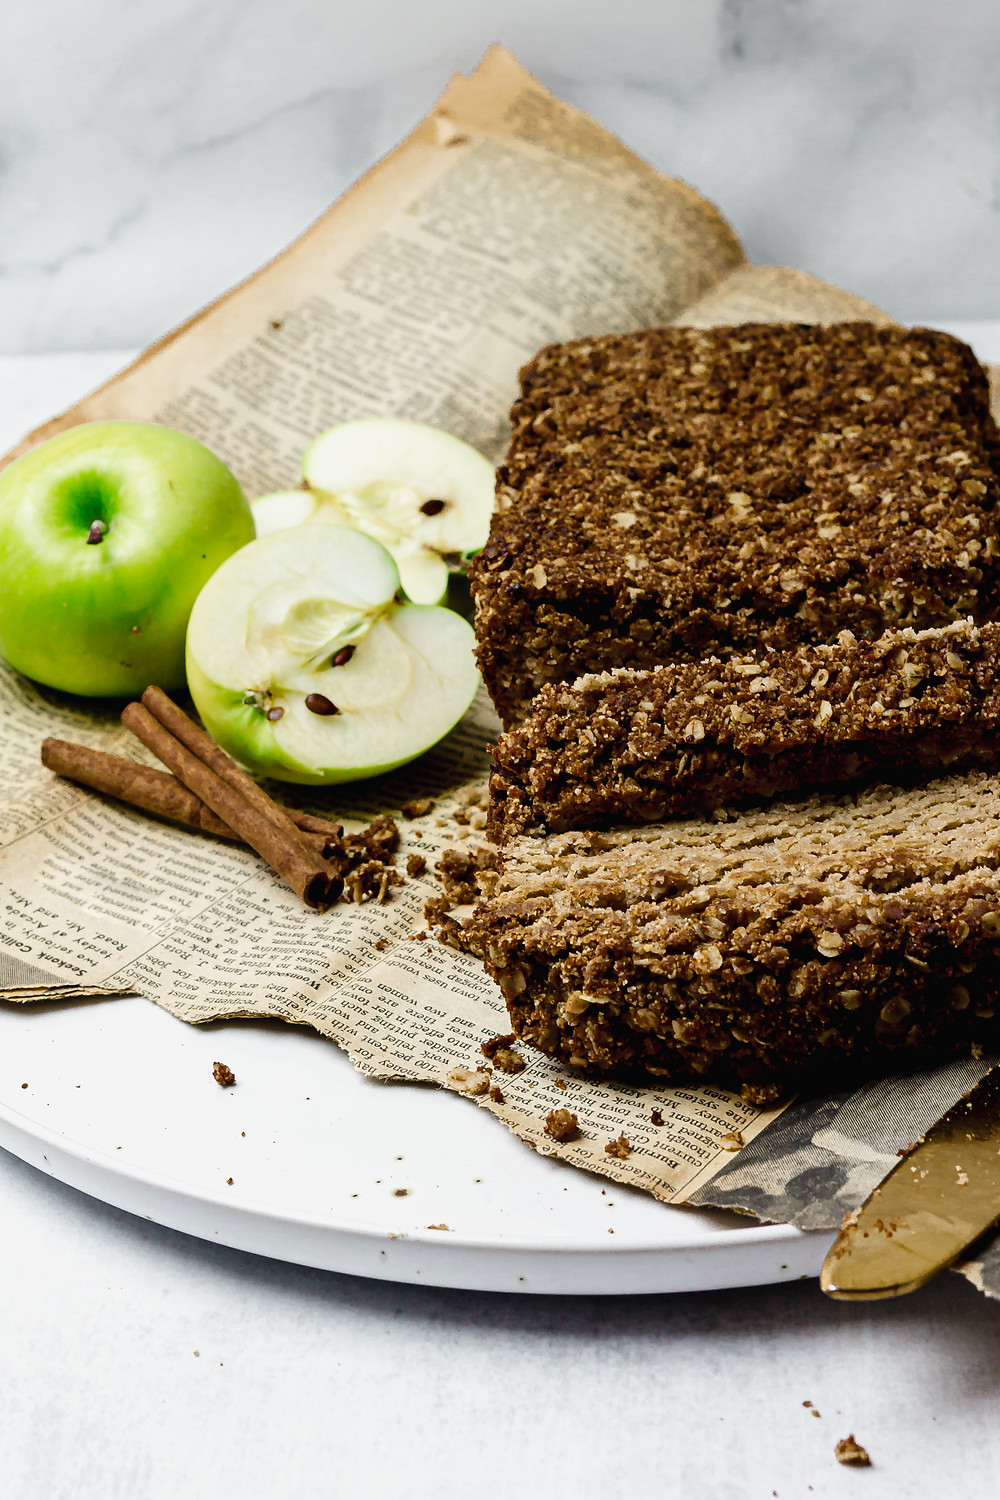 Low FODMAP Grain Free Apple Streusel Loaf - A low FODMAP Dessert - Pretty Delicious Life - Is there anything that screams fall better than apples + cinnamon? Sure, I know you're probably screaming PUMPKIN SPICE as you're reading this, but I'm going to go ahead and declare apples